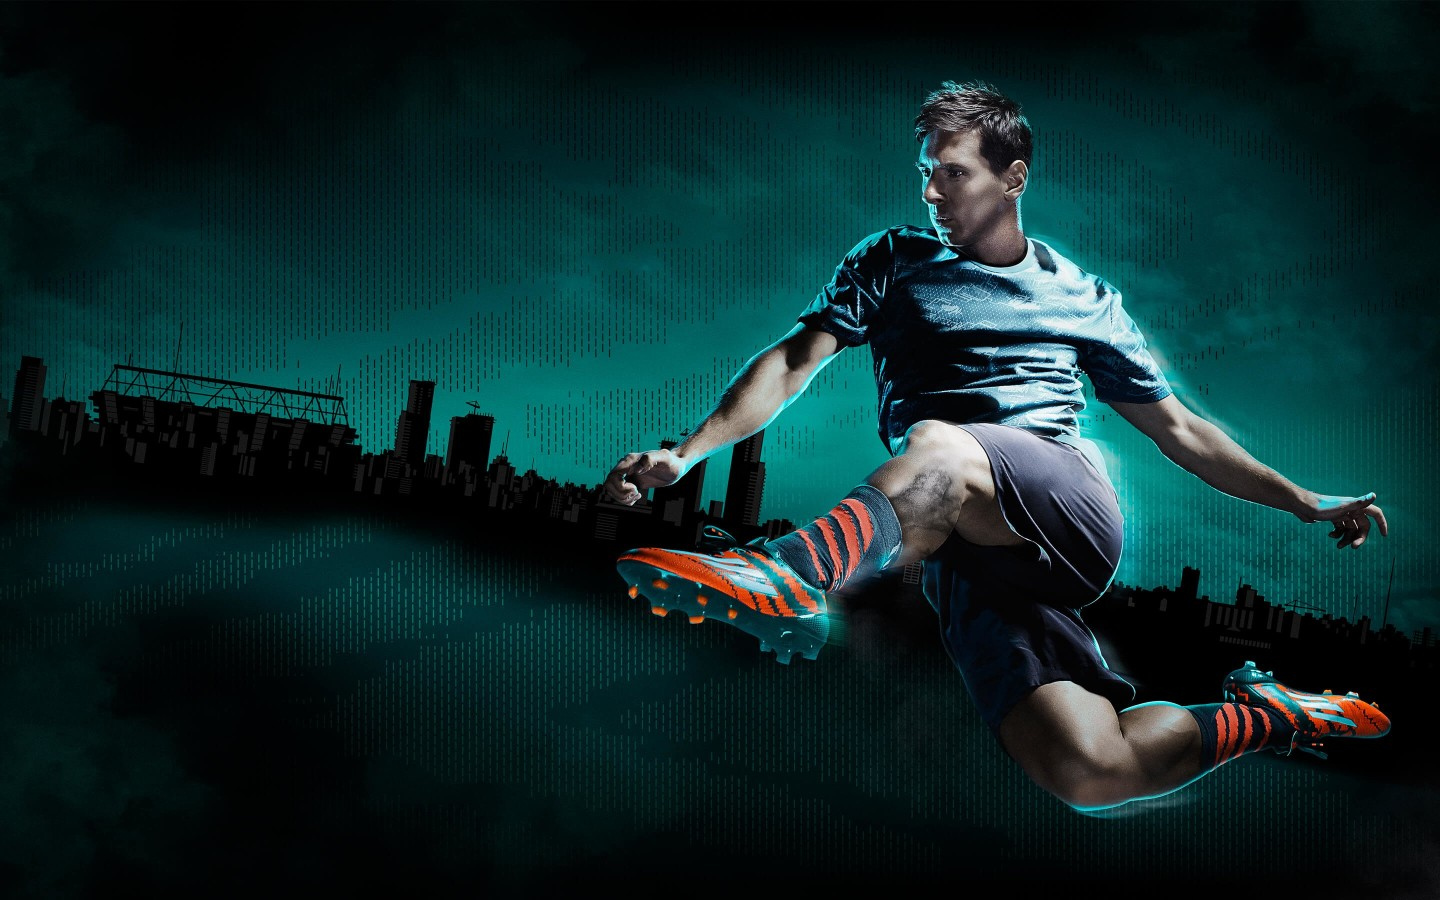 Lionel Messi Adidas Commercial Wallpaper for Desktop 1440x900